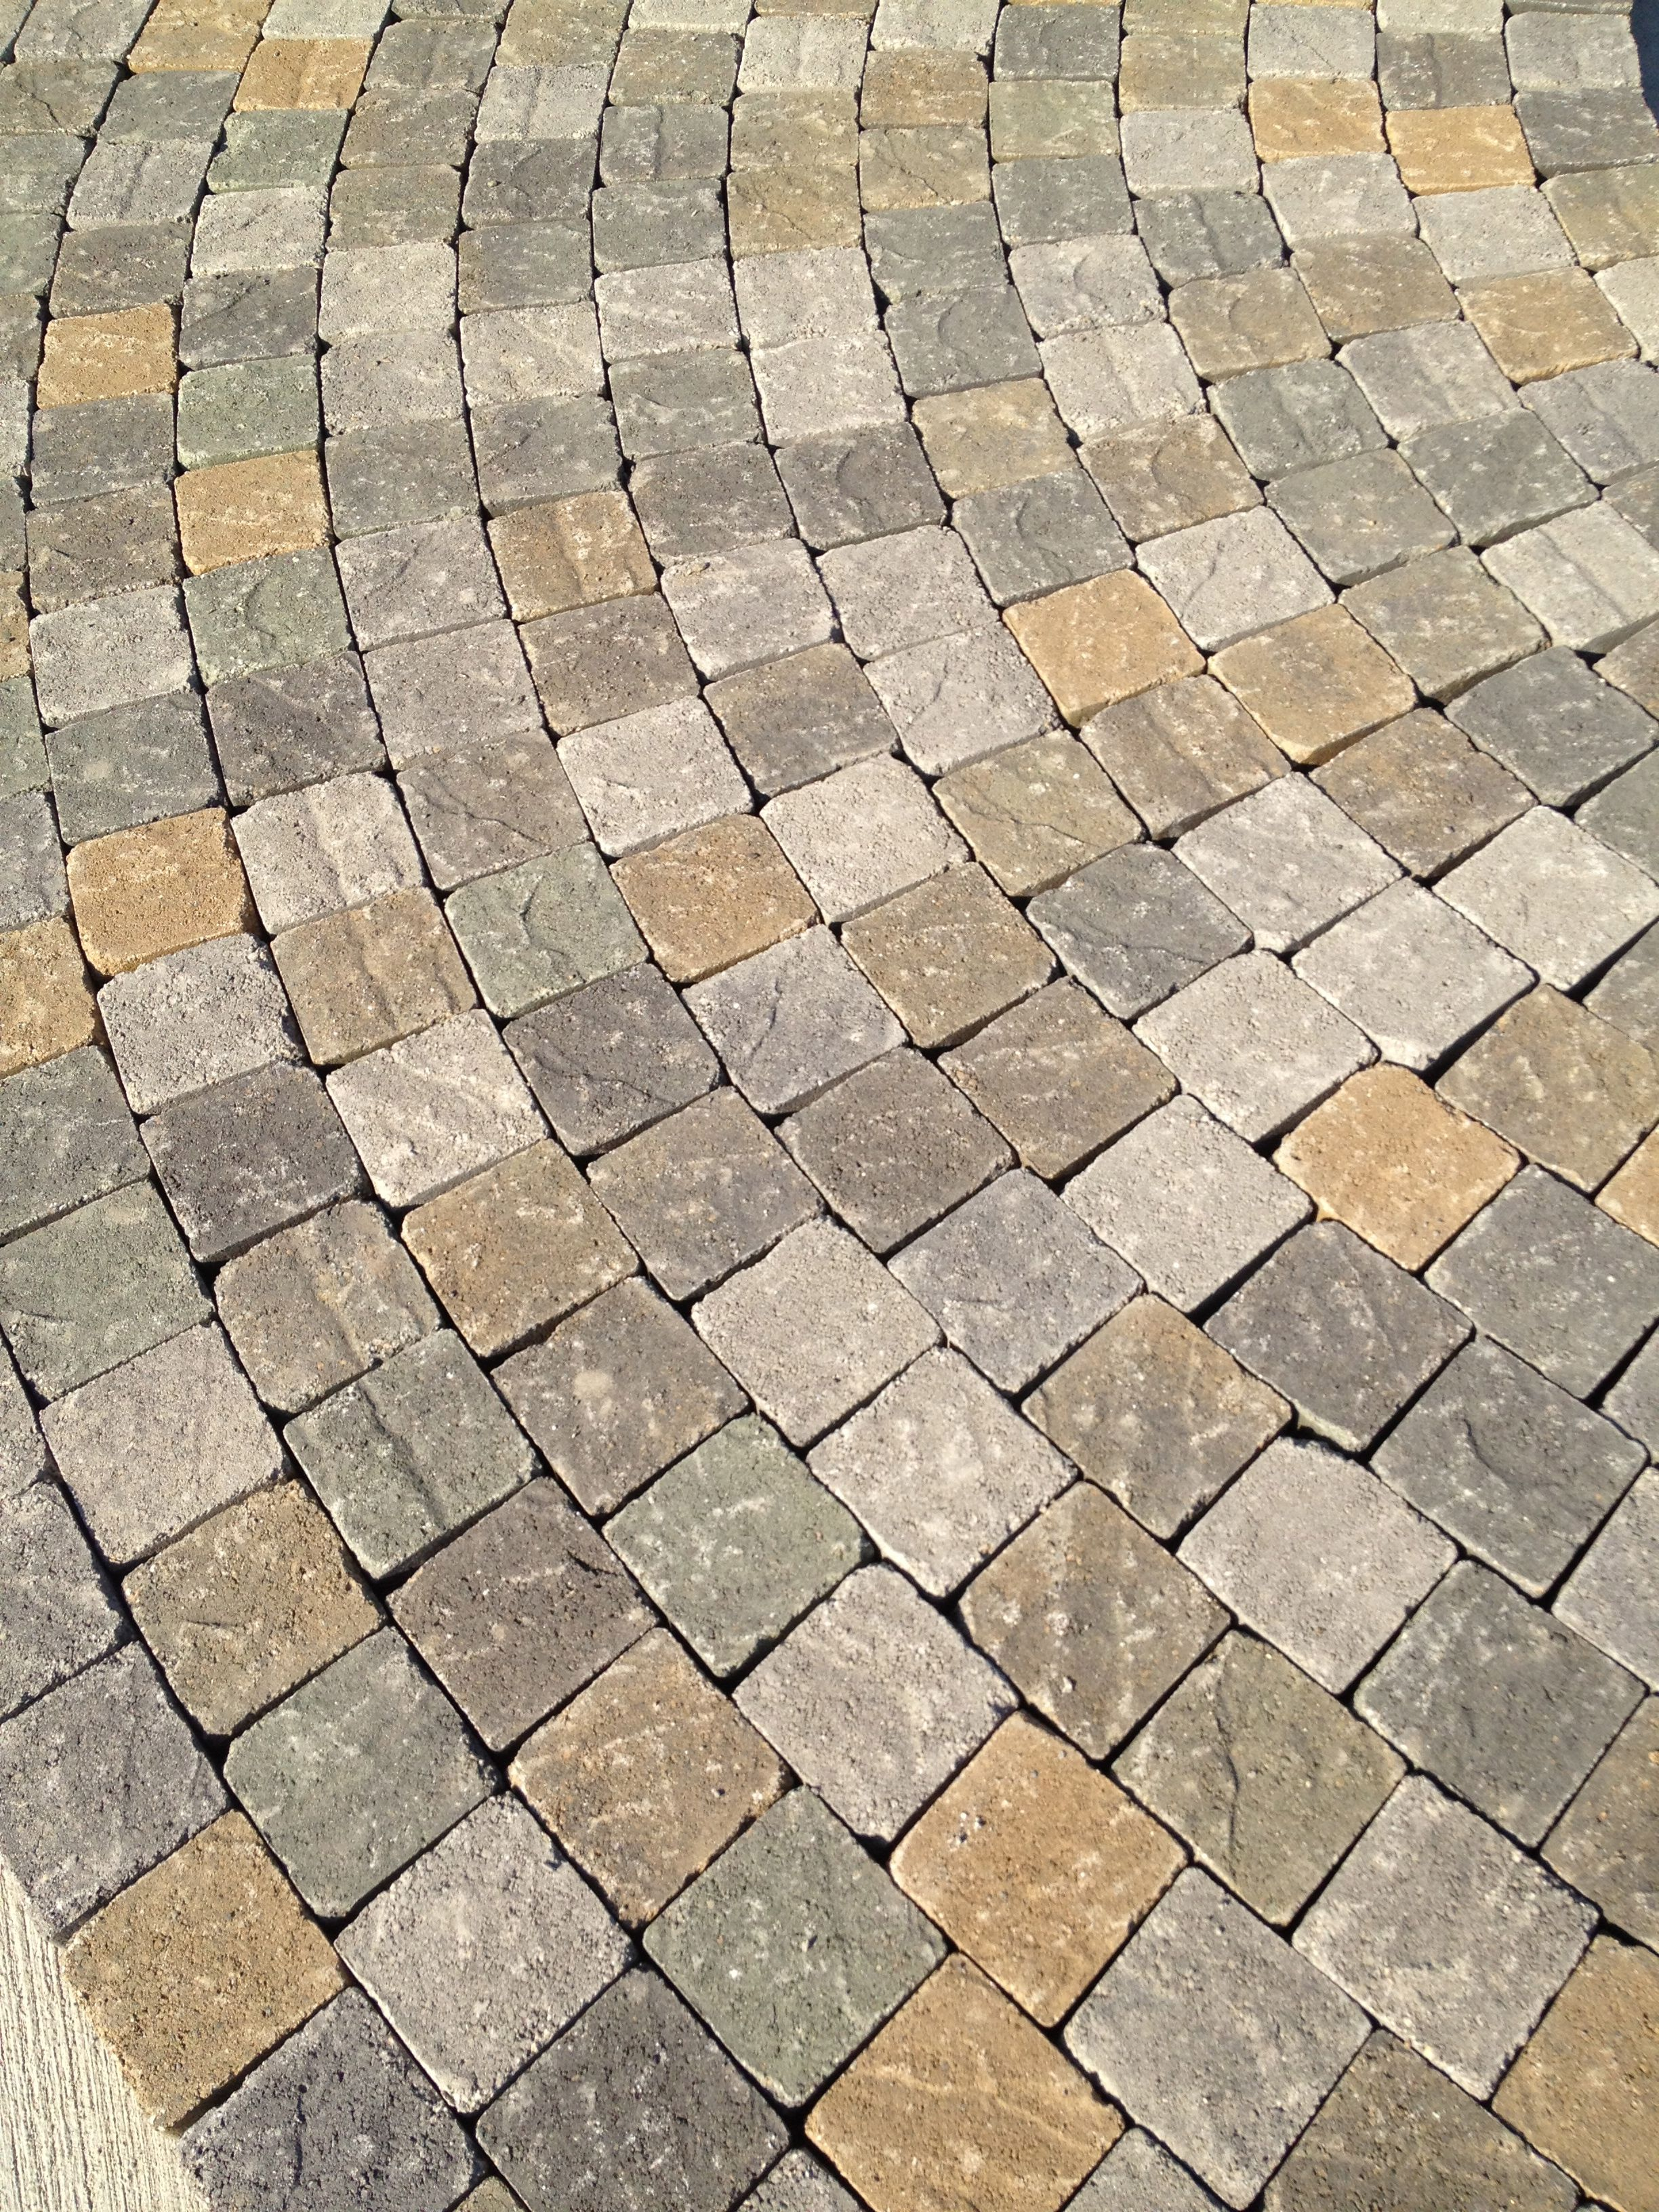 Orco Block Hardscape Hardscape Paving Stones Backyard Design